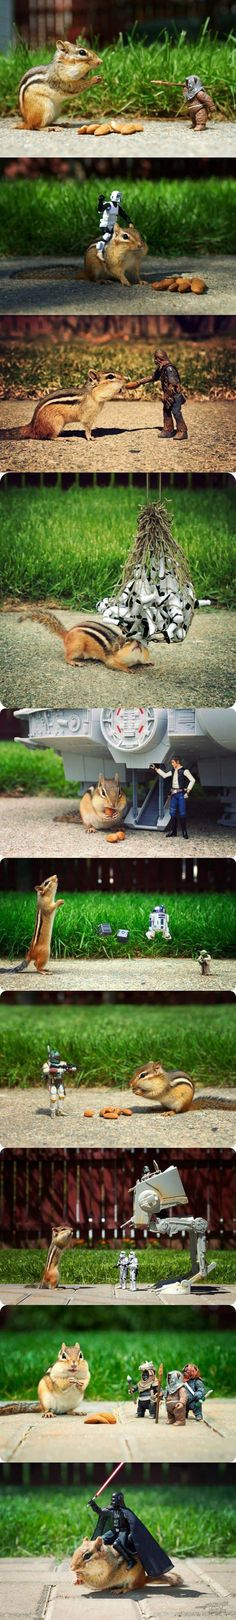 The Force is strong with this chipmunk.